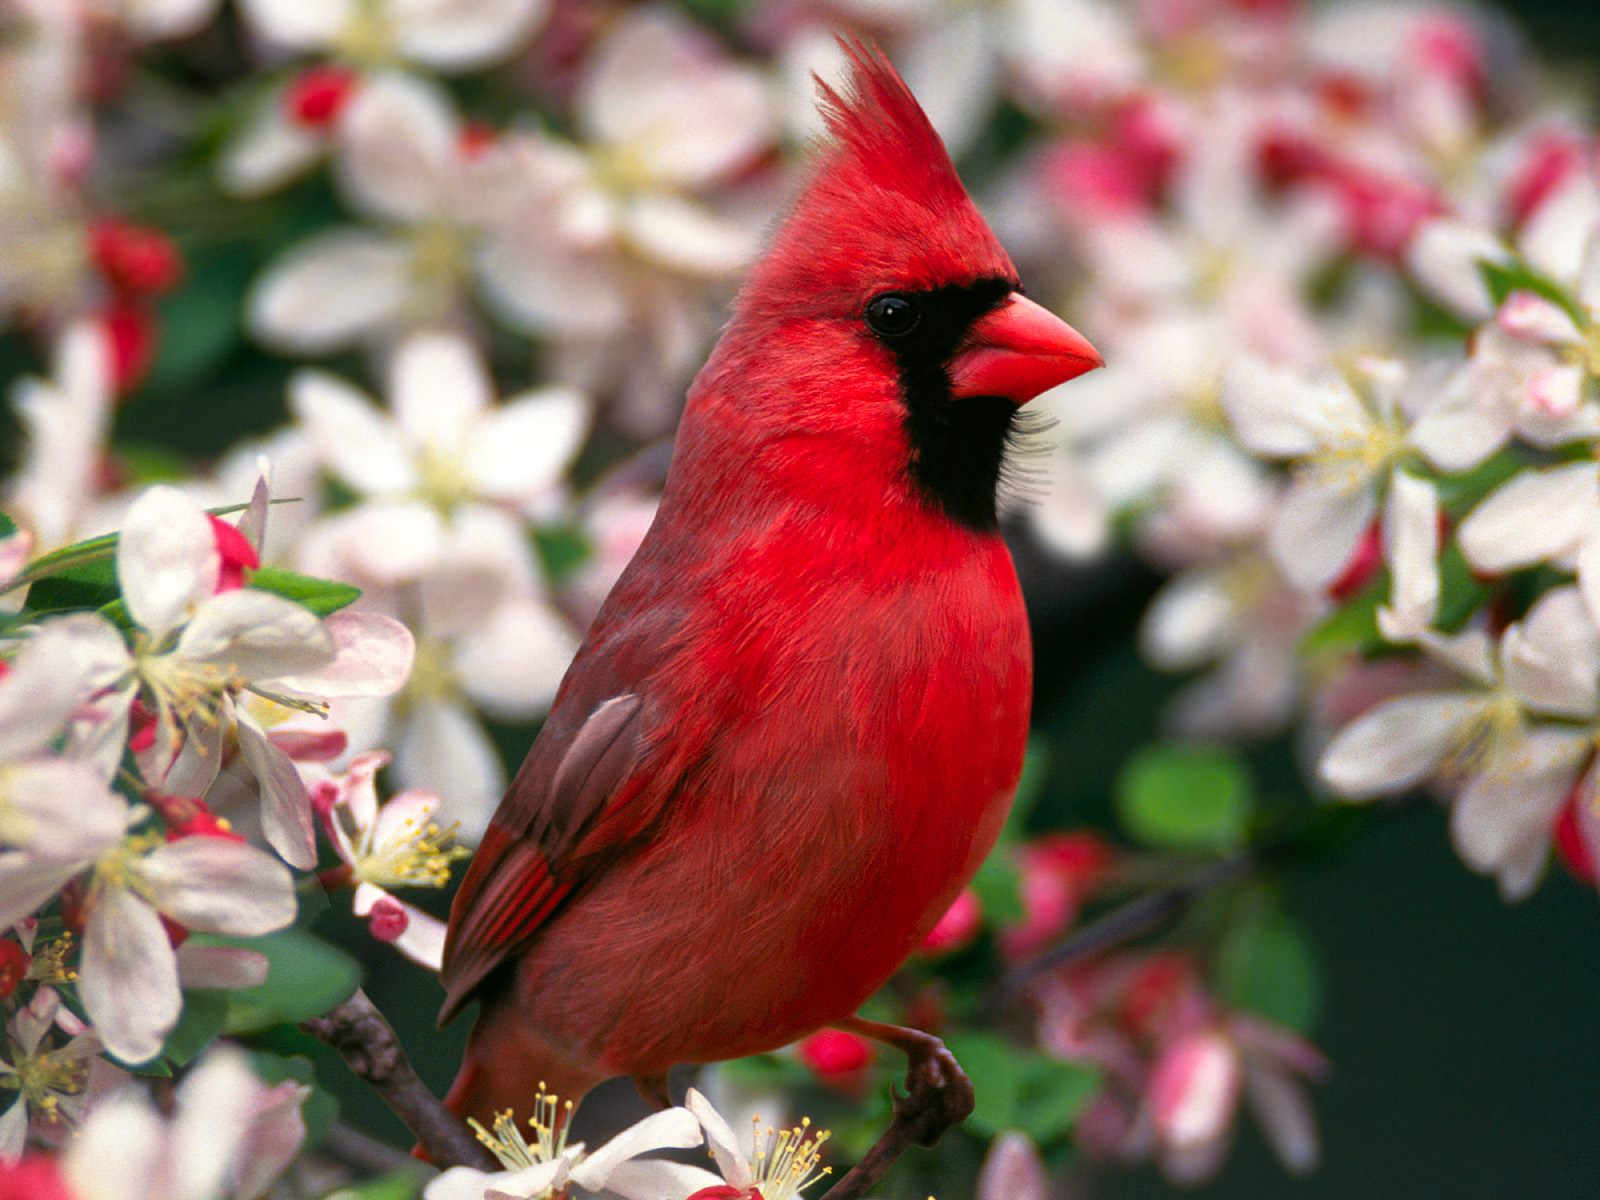 High-resolution pictures of birds 3218